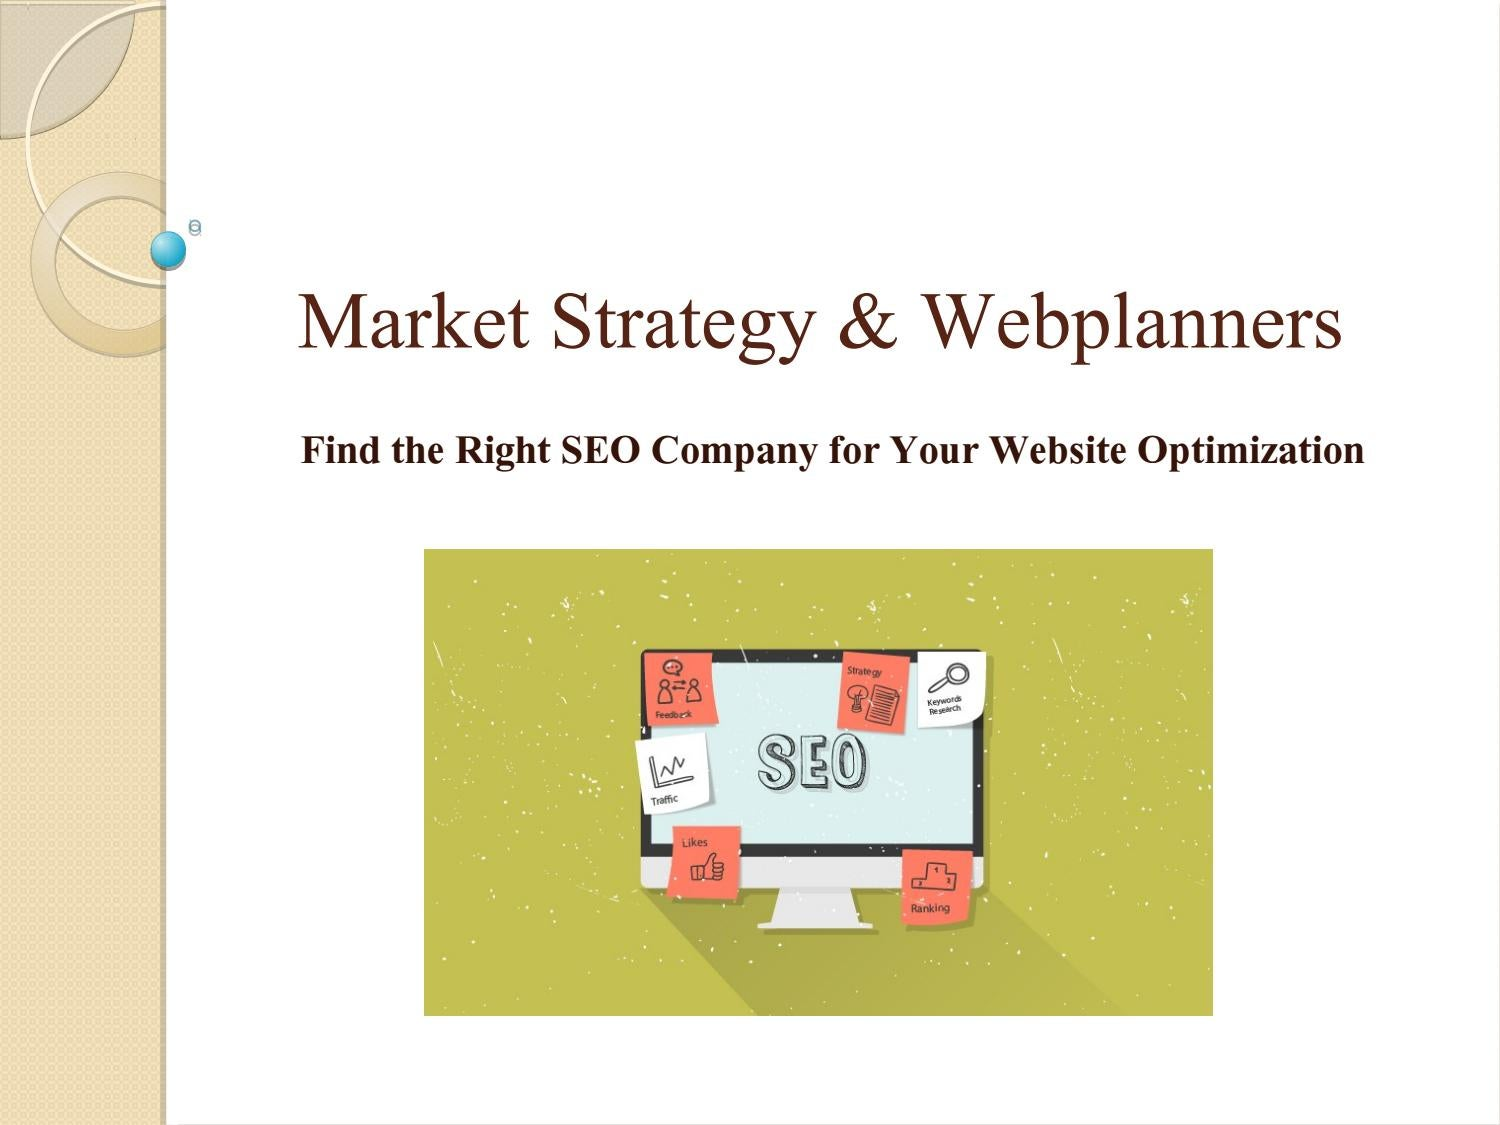 Seo company melbourne - Market Strategy   Webplanners by Webplanners - issuu 5670af2740b